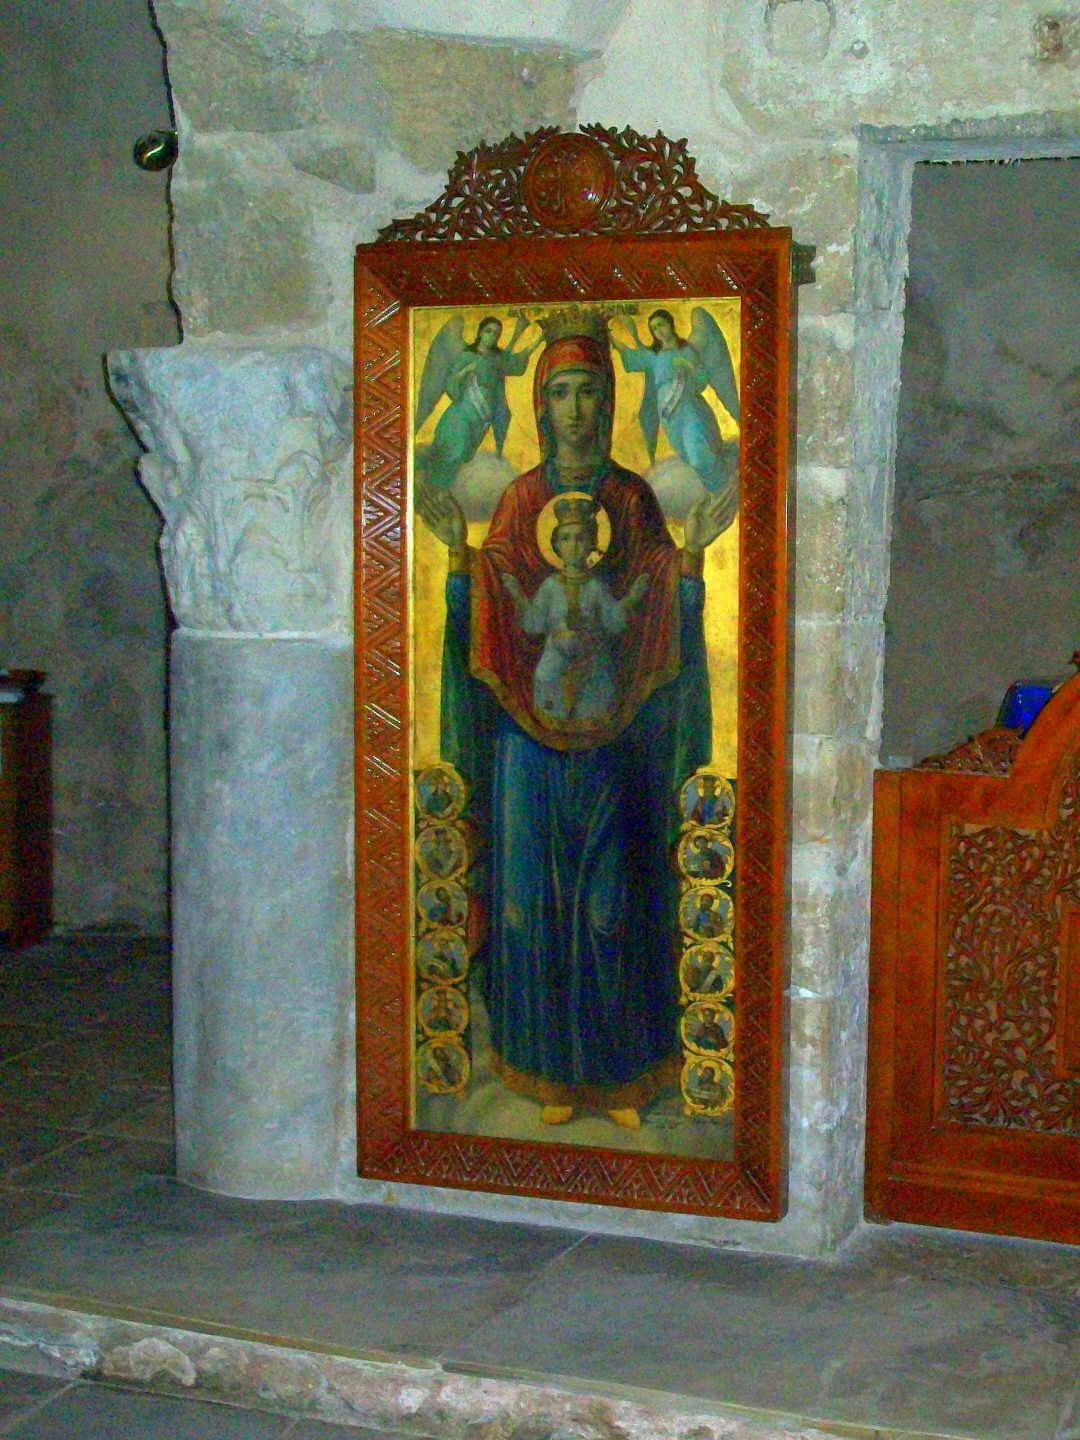 Mother Mary (Mariam) & Jesus (Isa)Ayia Napa Monastery (10th c.) - Ayia Napa, Cyprus